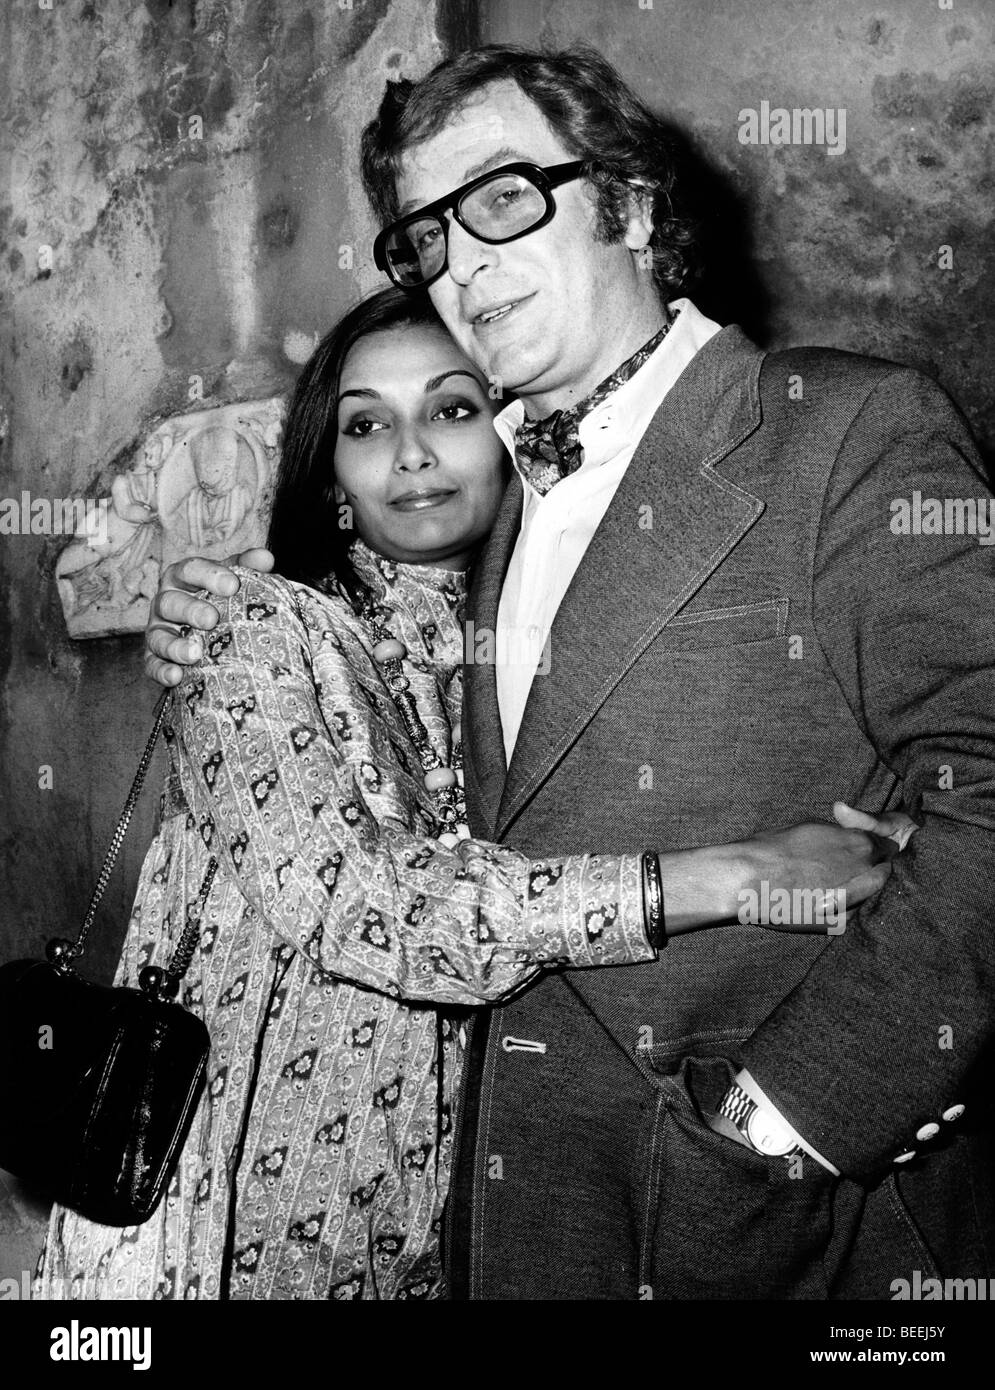 Actor Michael Caine and Guyanese-British model Shakira Baksh in 1972. Stock Photo